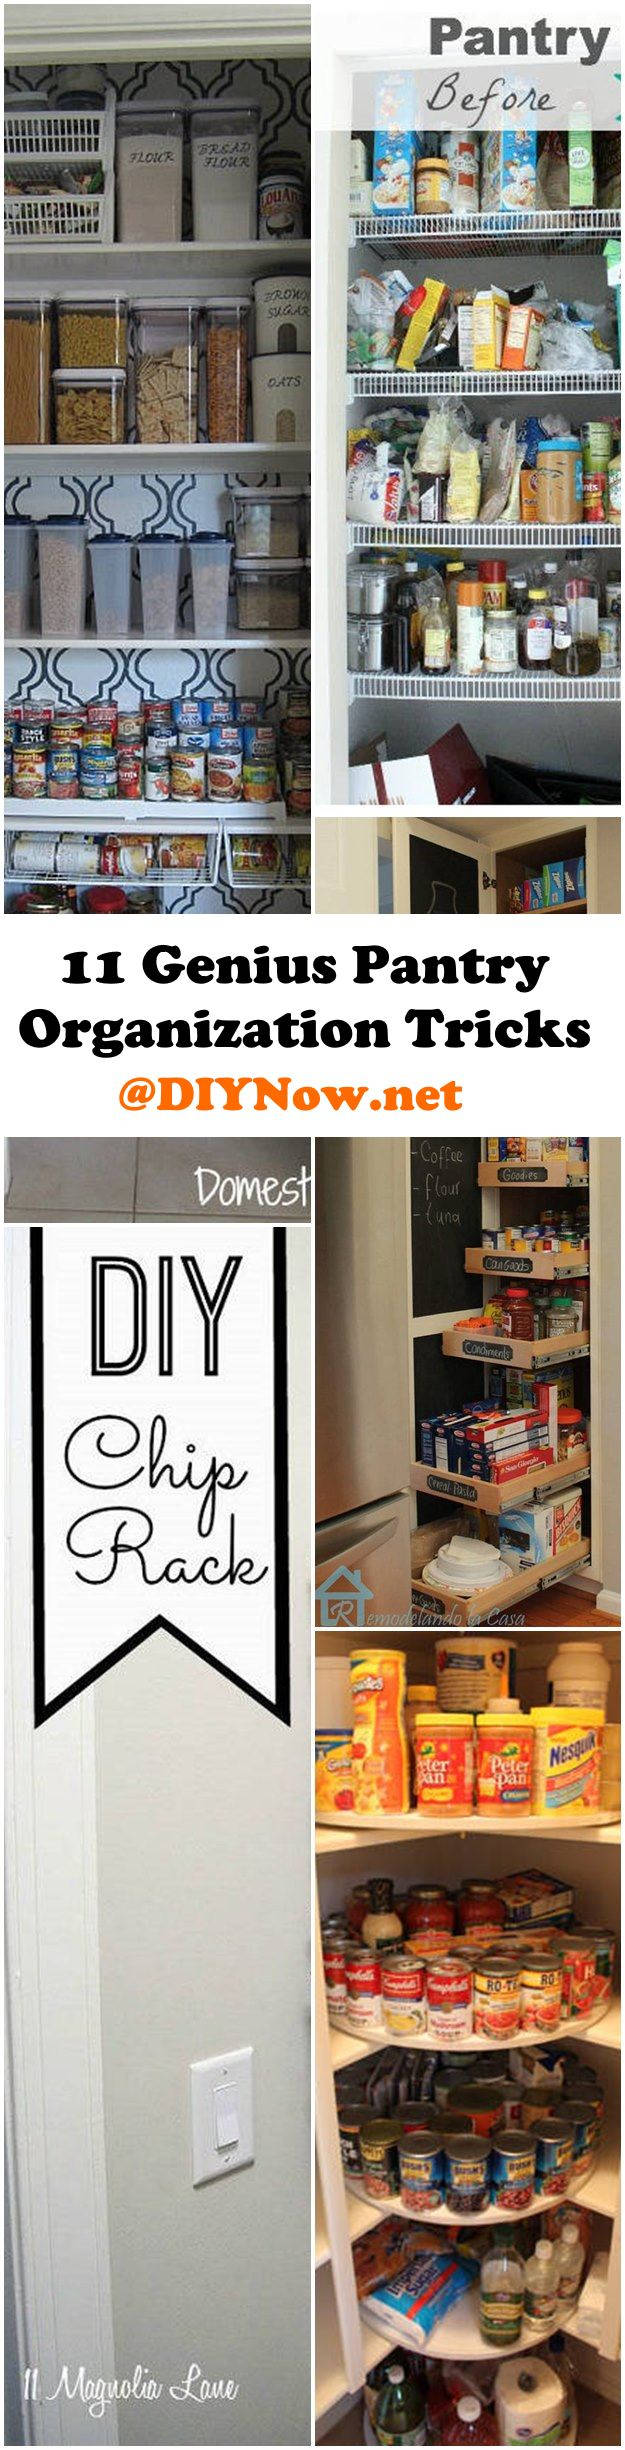 11 Genius Pantry Organization Tricks